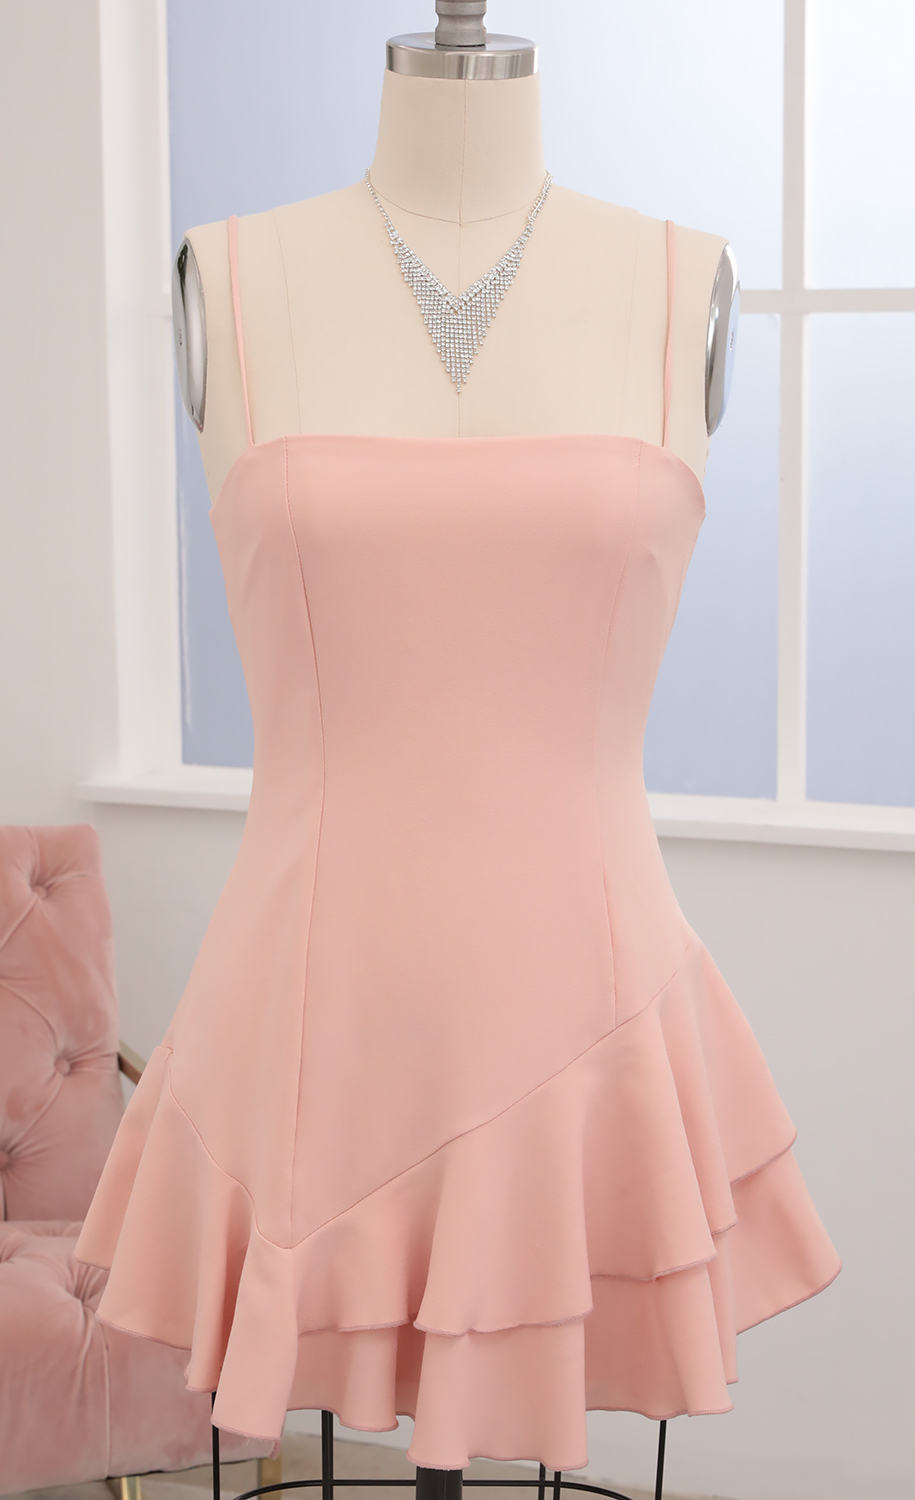 Azura Asymmetric Ruffle Dress in Blush